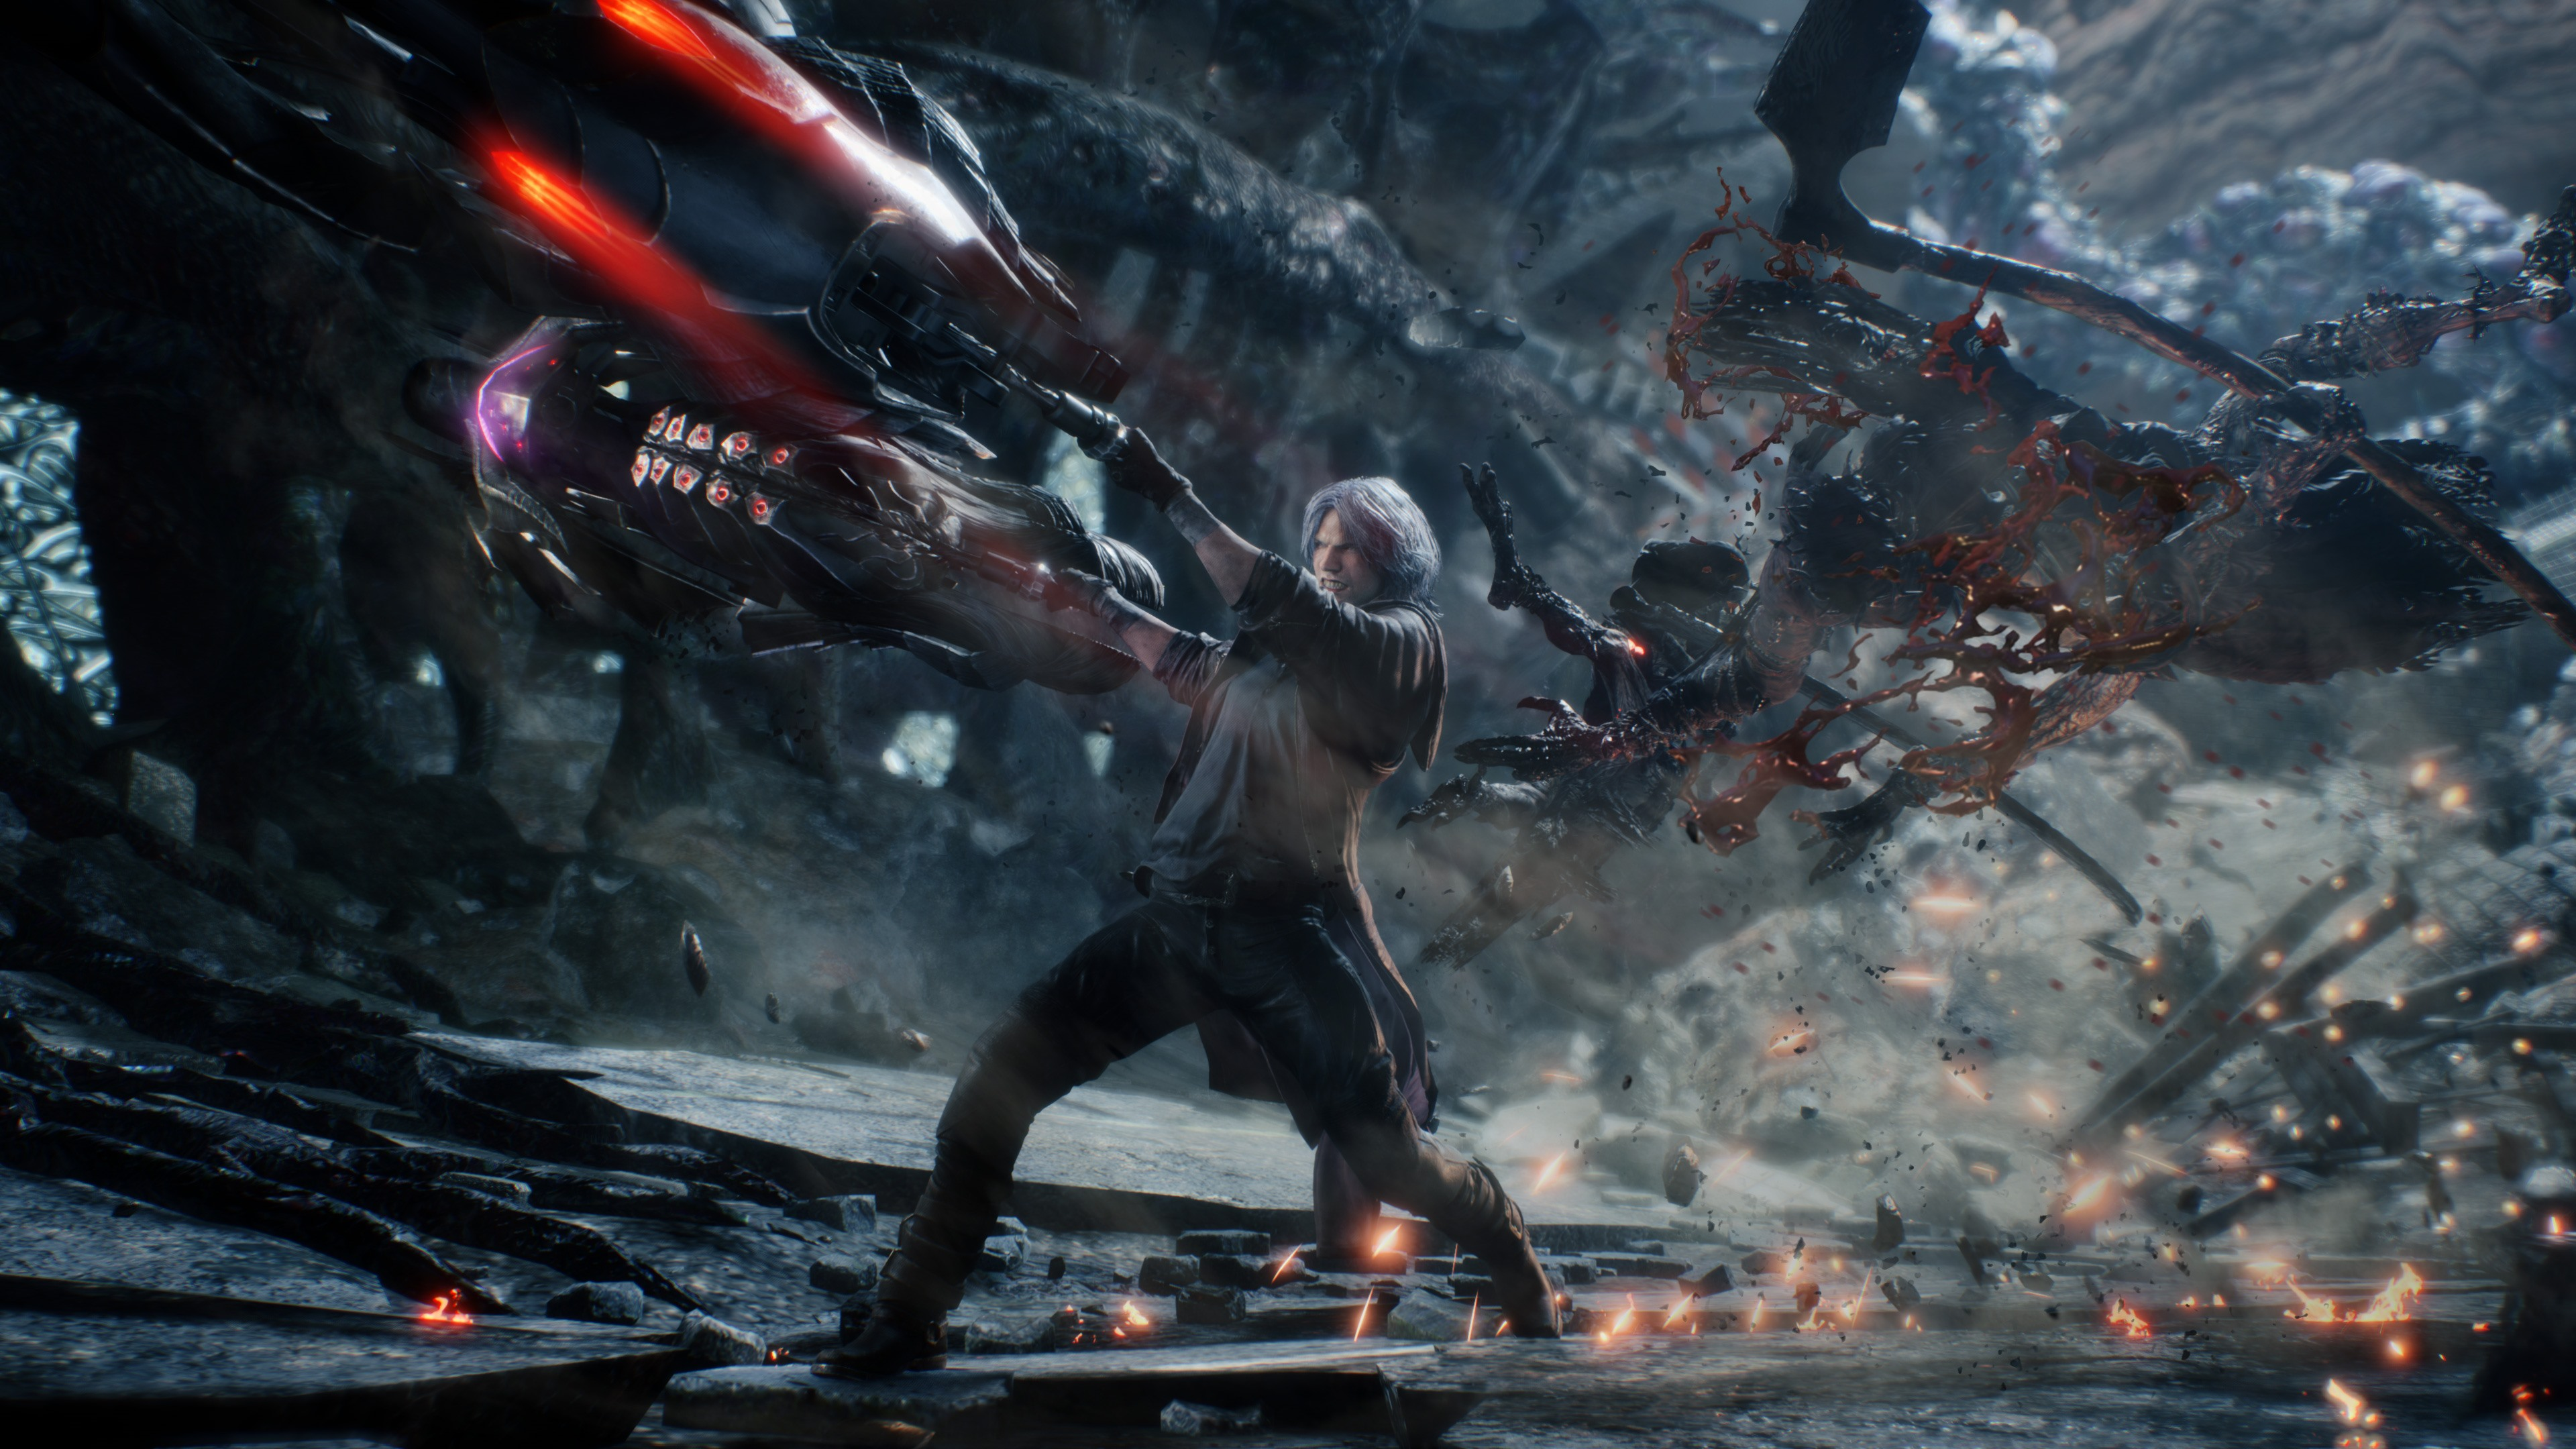 Wallpaper Devil May Cry 5 Fight 3840x2160 Uhd 4k Picture Image